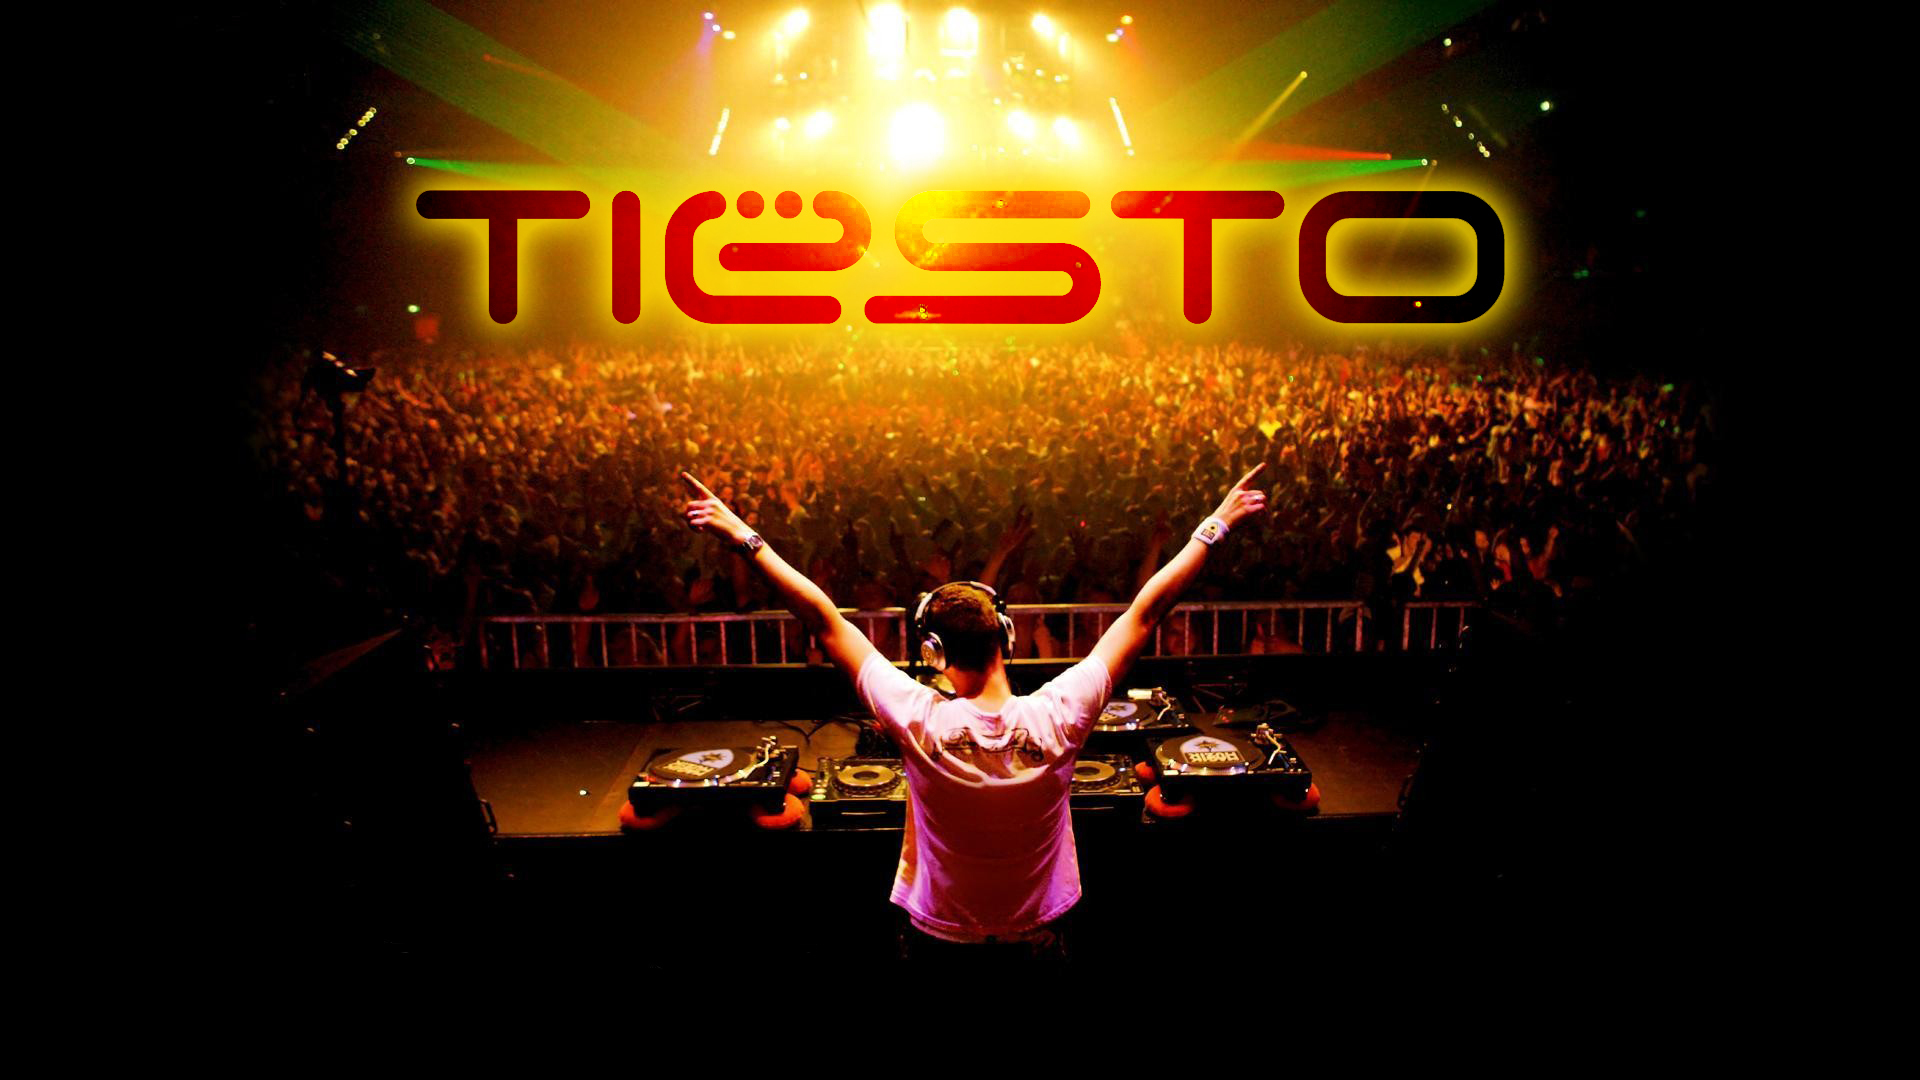 tiesto wallpaper hd dj Celebrity and Movie Pictures Photos 1920x1080